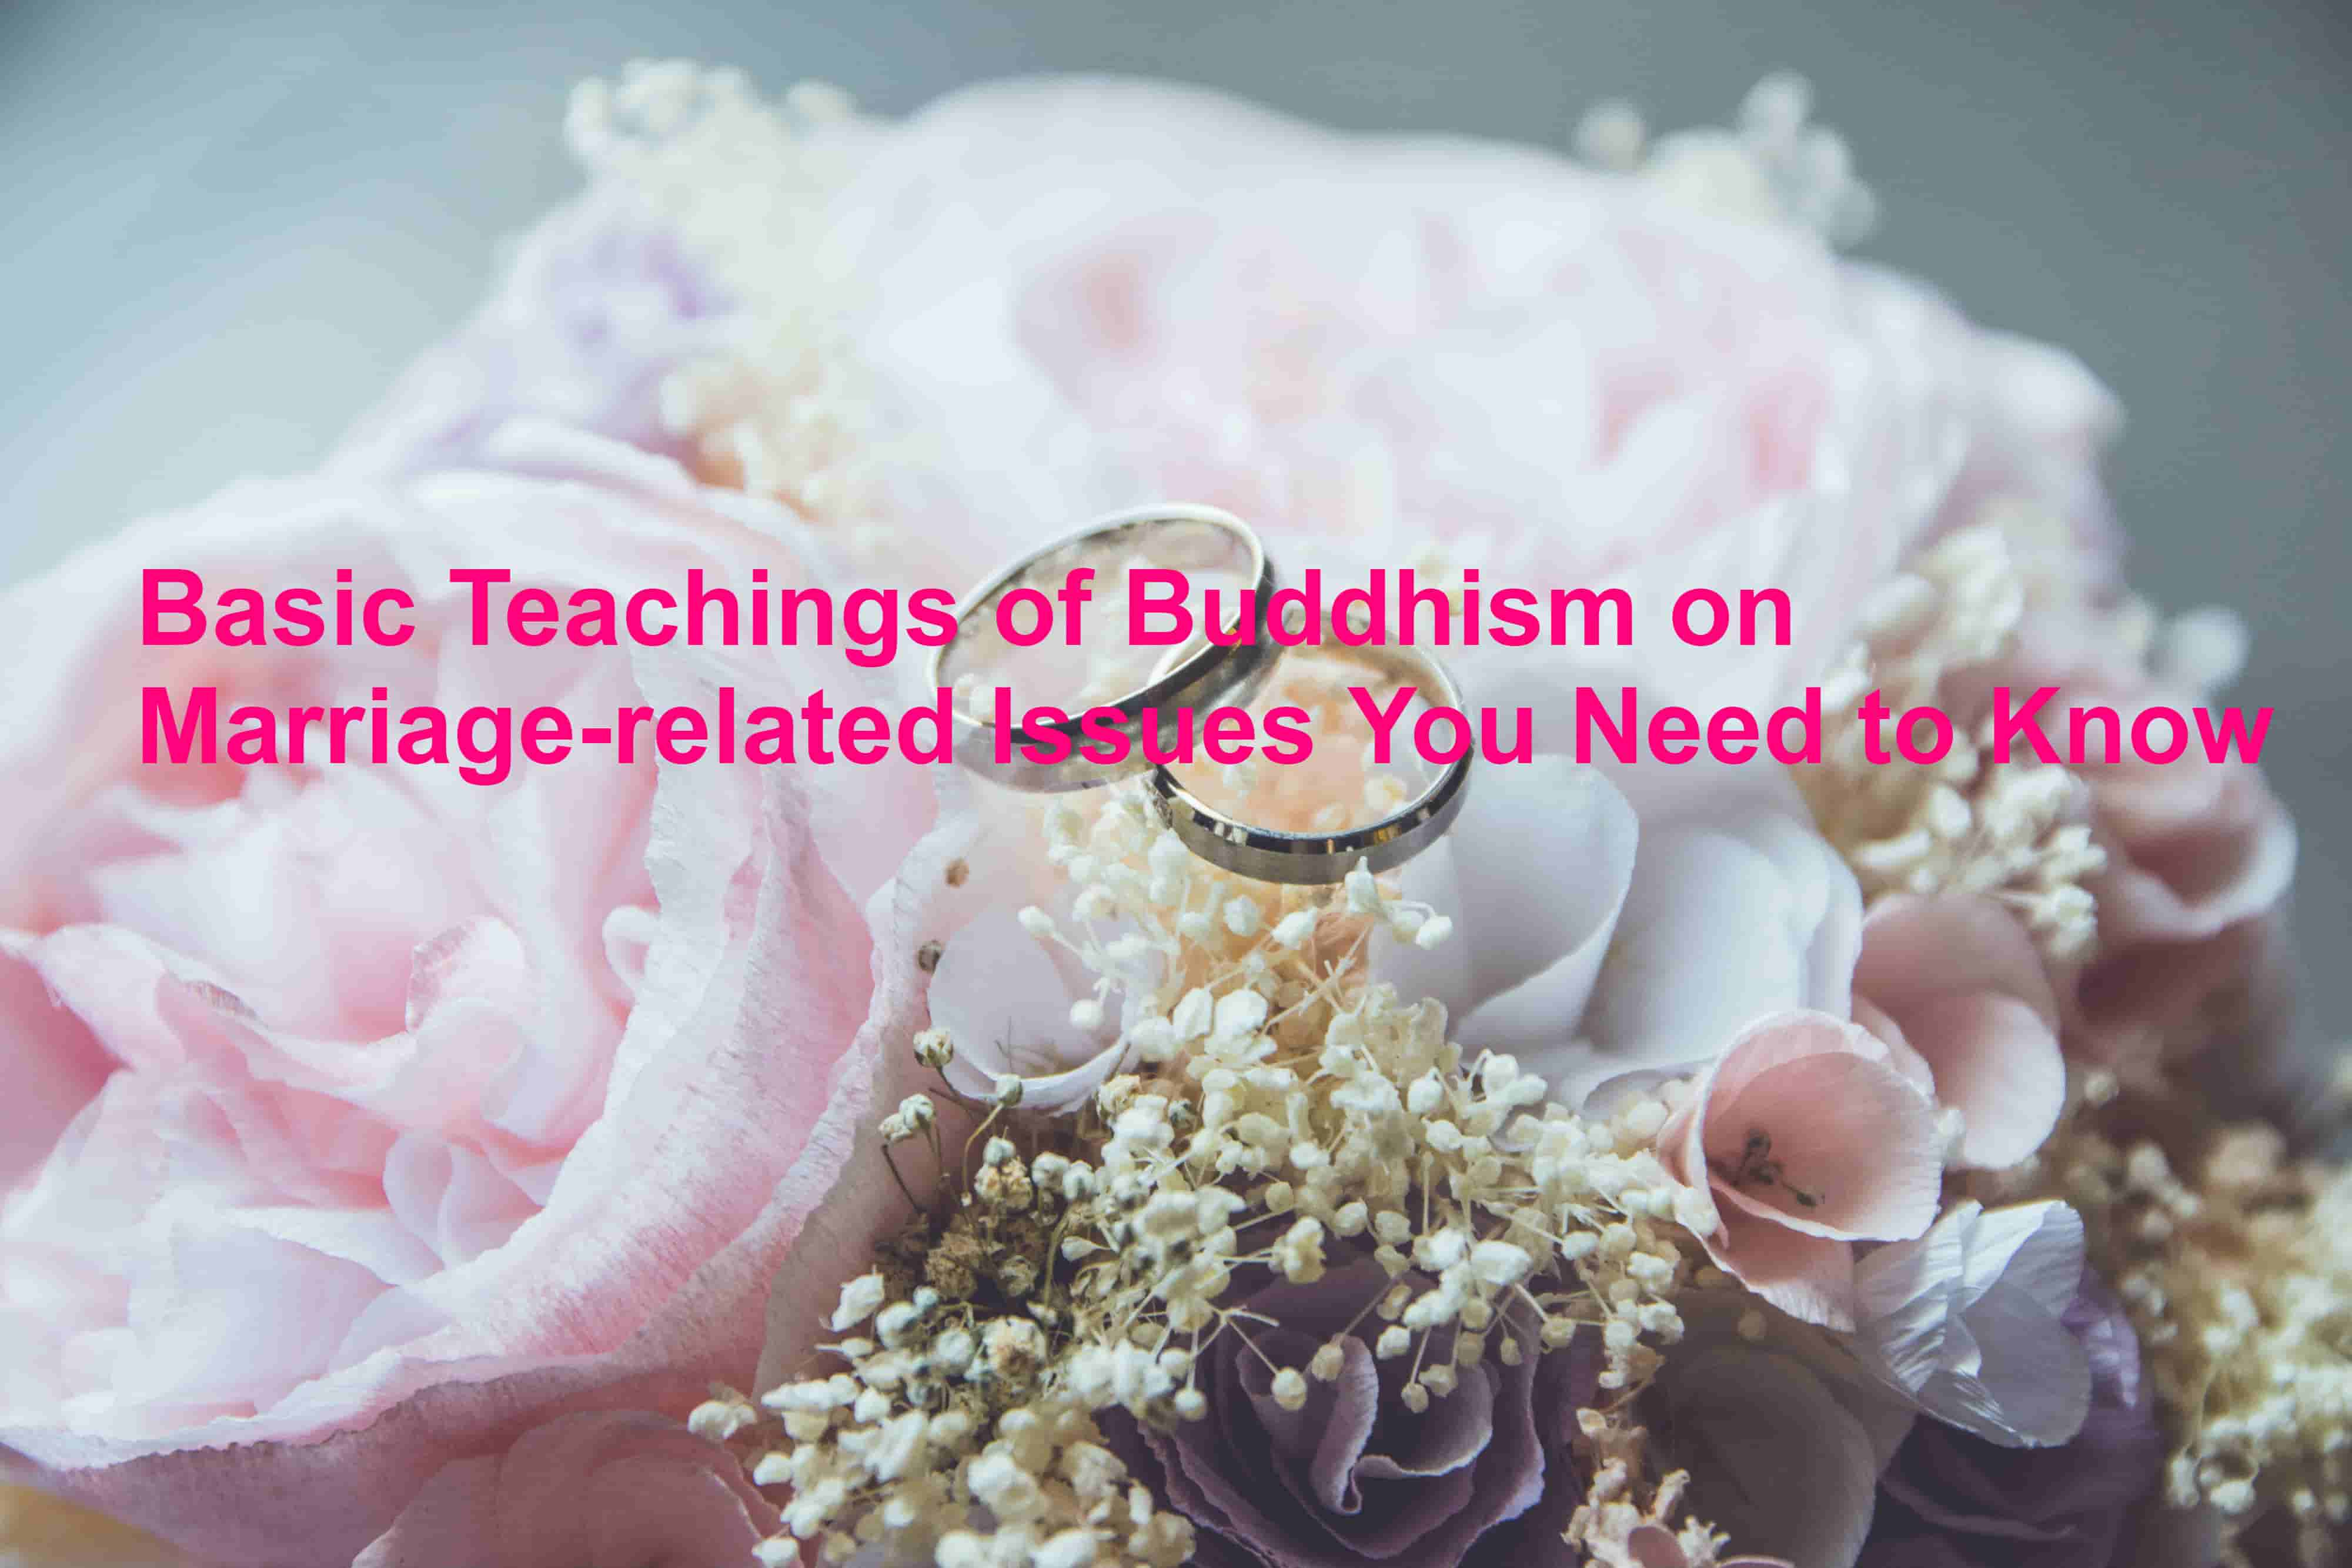 Basic Teachings of Buddhism on Marriage-related Issues You Need to Know